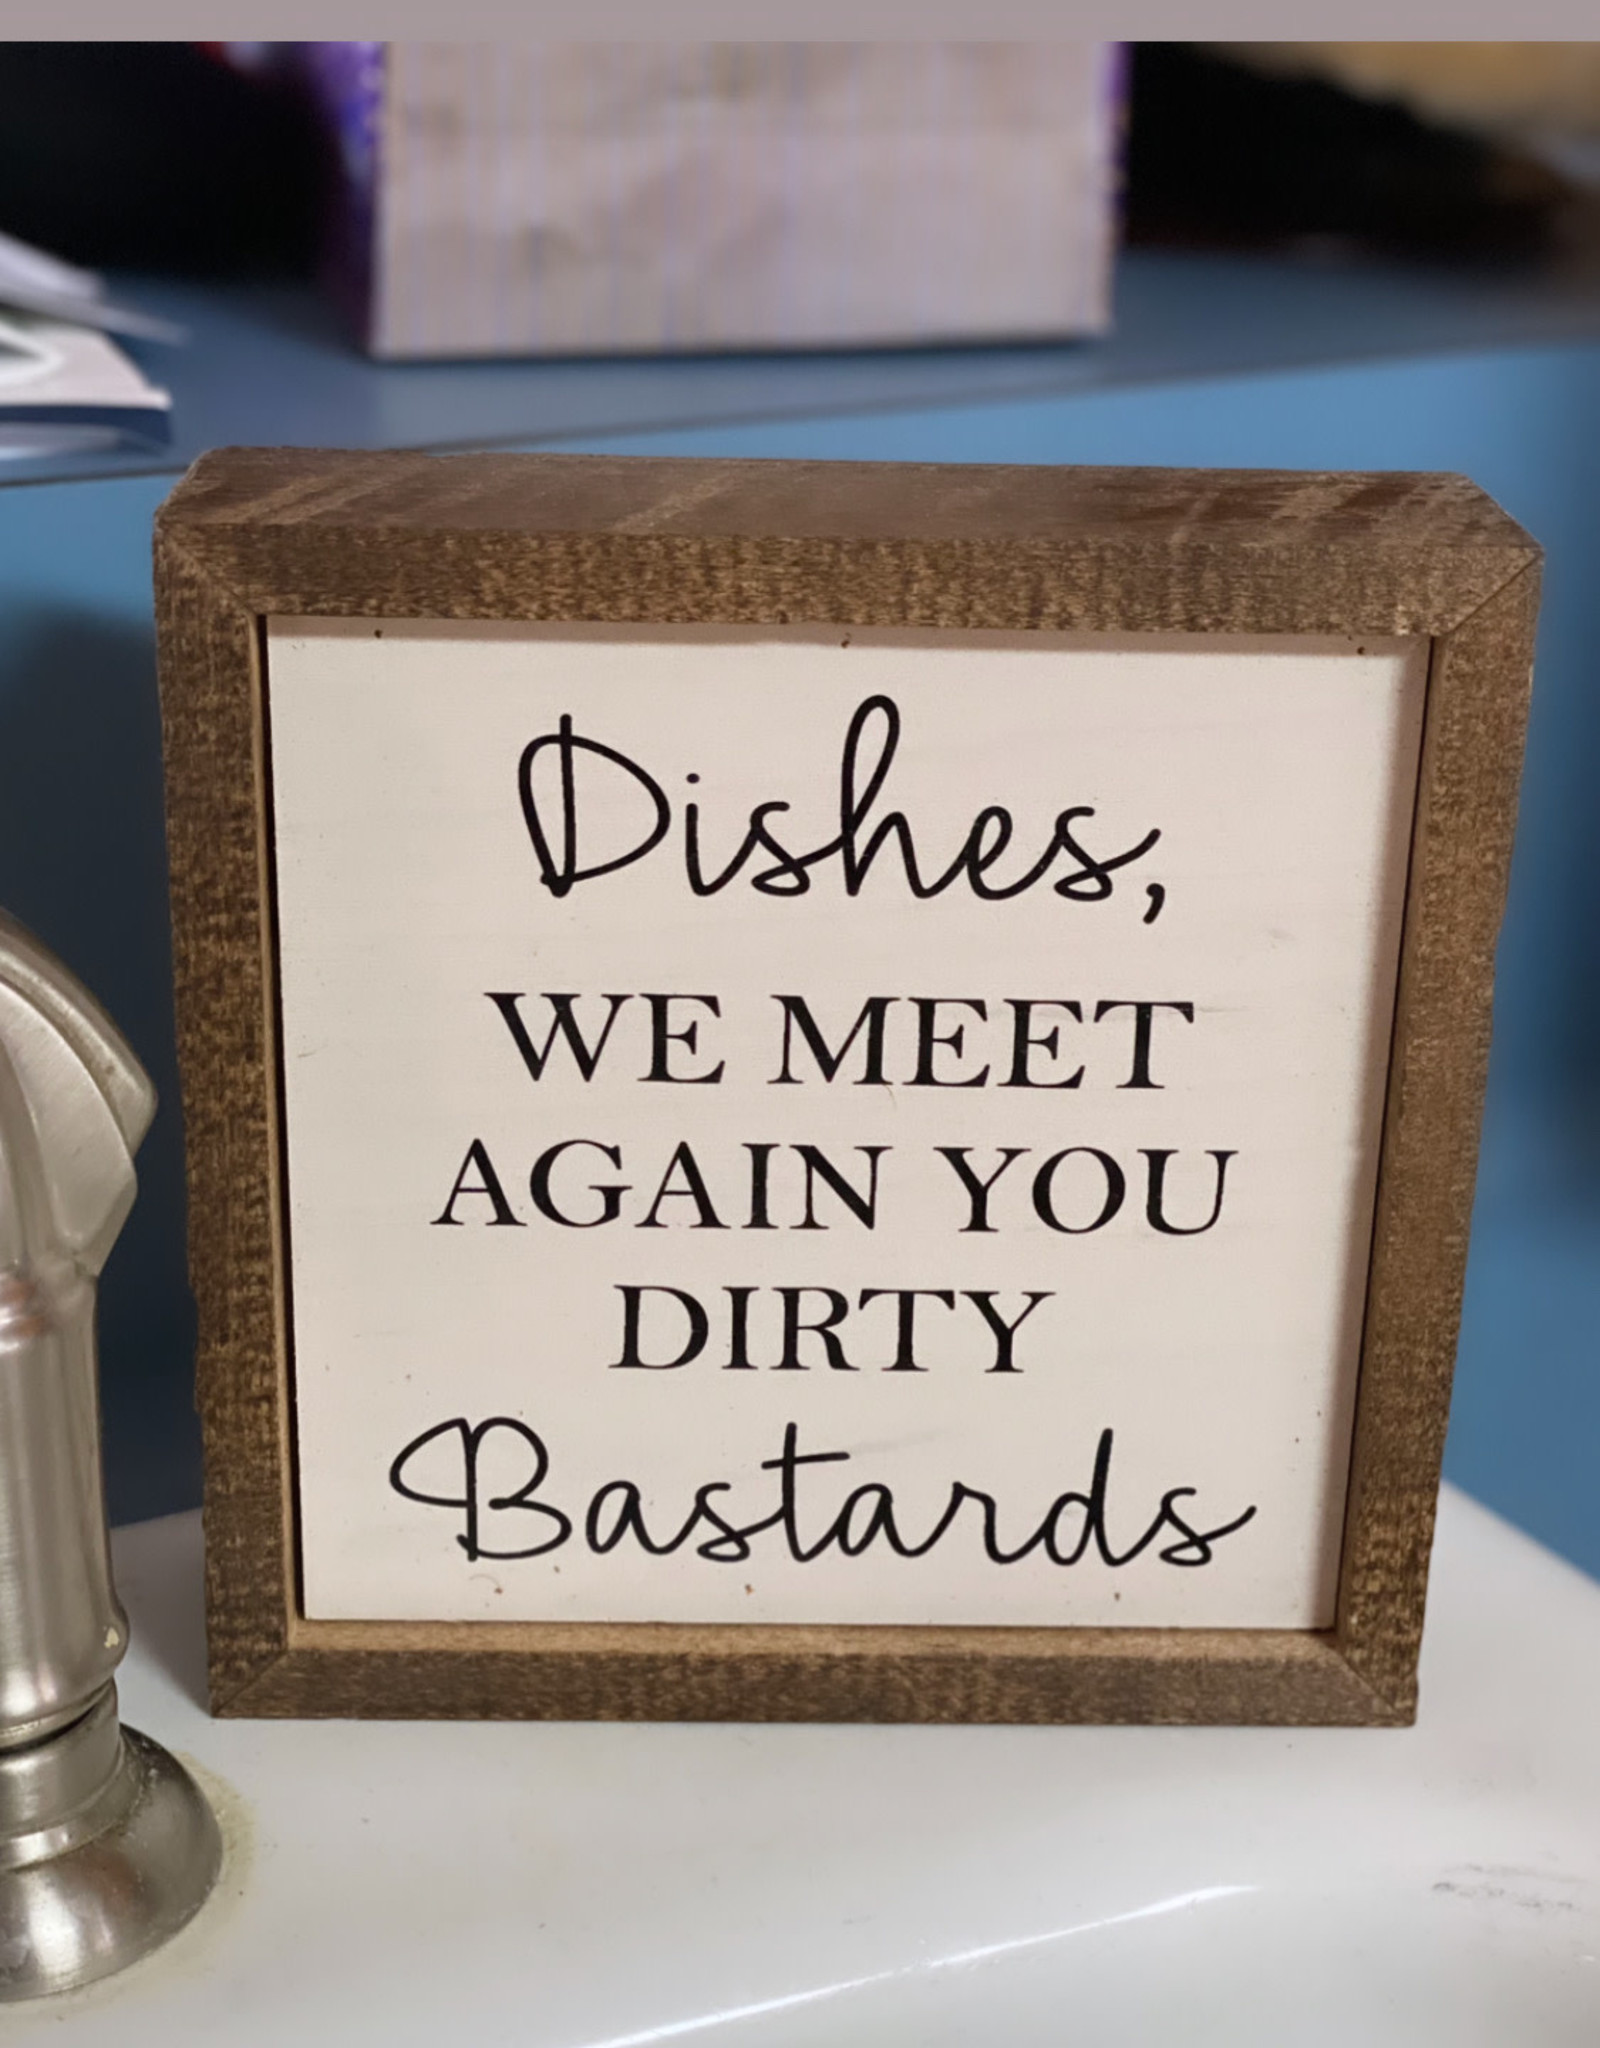 Wink Dishes, We Meet Again